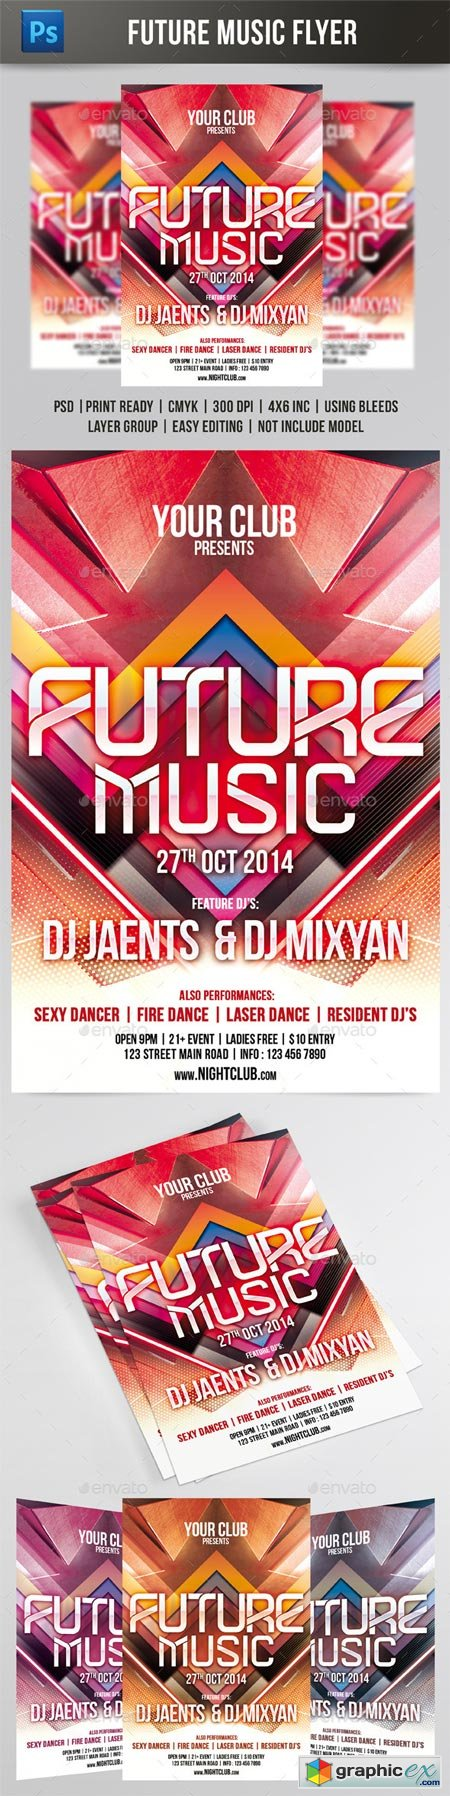 Future Music Flyer 8841341